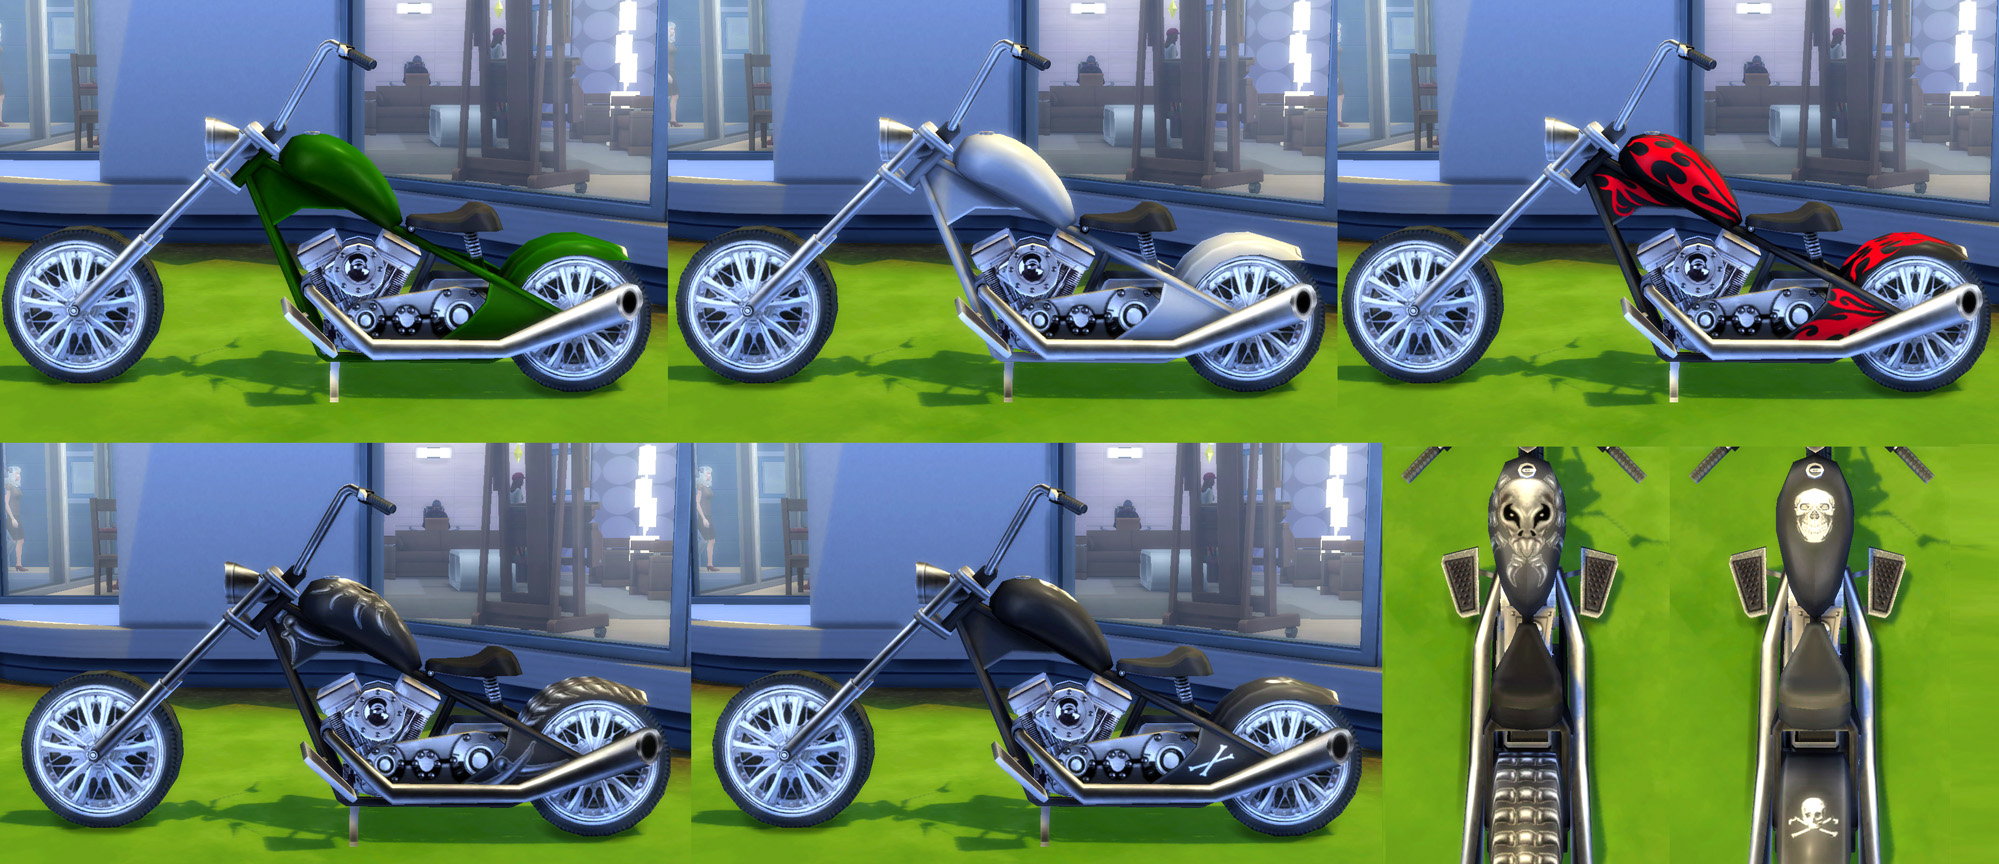 Terrific Mod The Sims Sittable Motorcycle Ts3 Conversion Caraccident5 Cool Chair Designs And Ideas Caraccident5Info